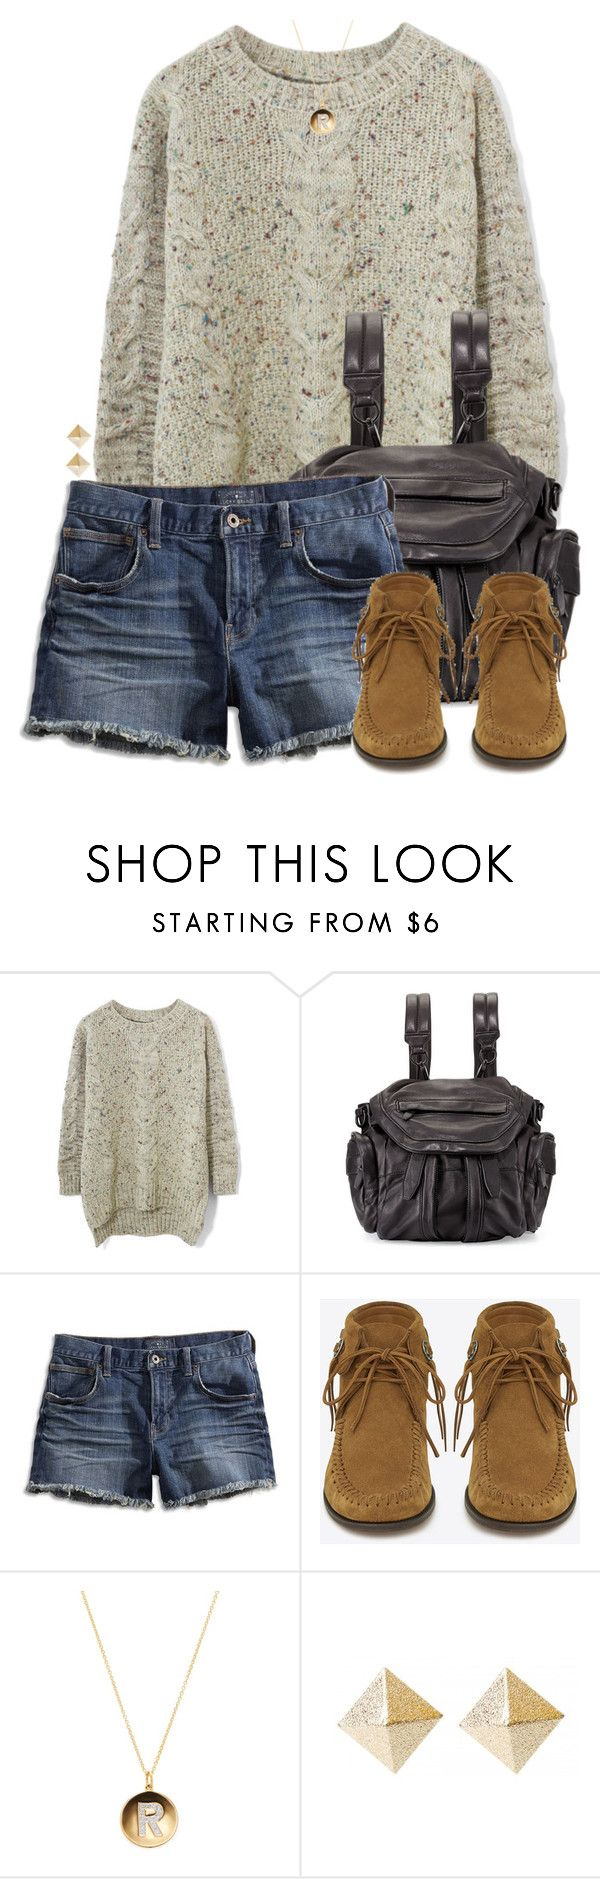 """""""Ron Weasley Inspired Soccer Game Outfit"""" by hpstyle ❤ liked on Polyvore featuring Chicwish, Alexander Wang, Lucky Brand, Yves Saint Laurent and Vendoro"""